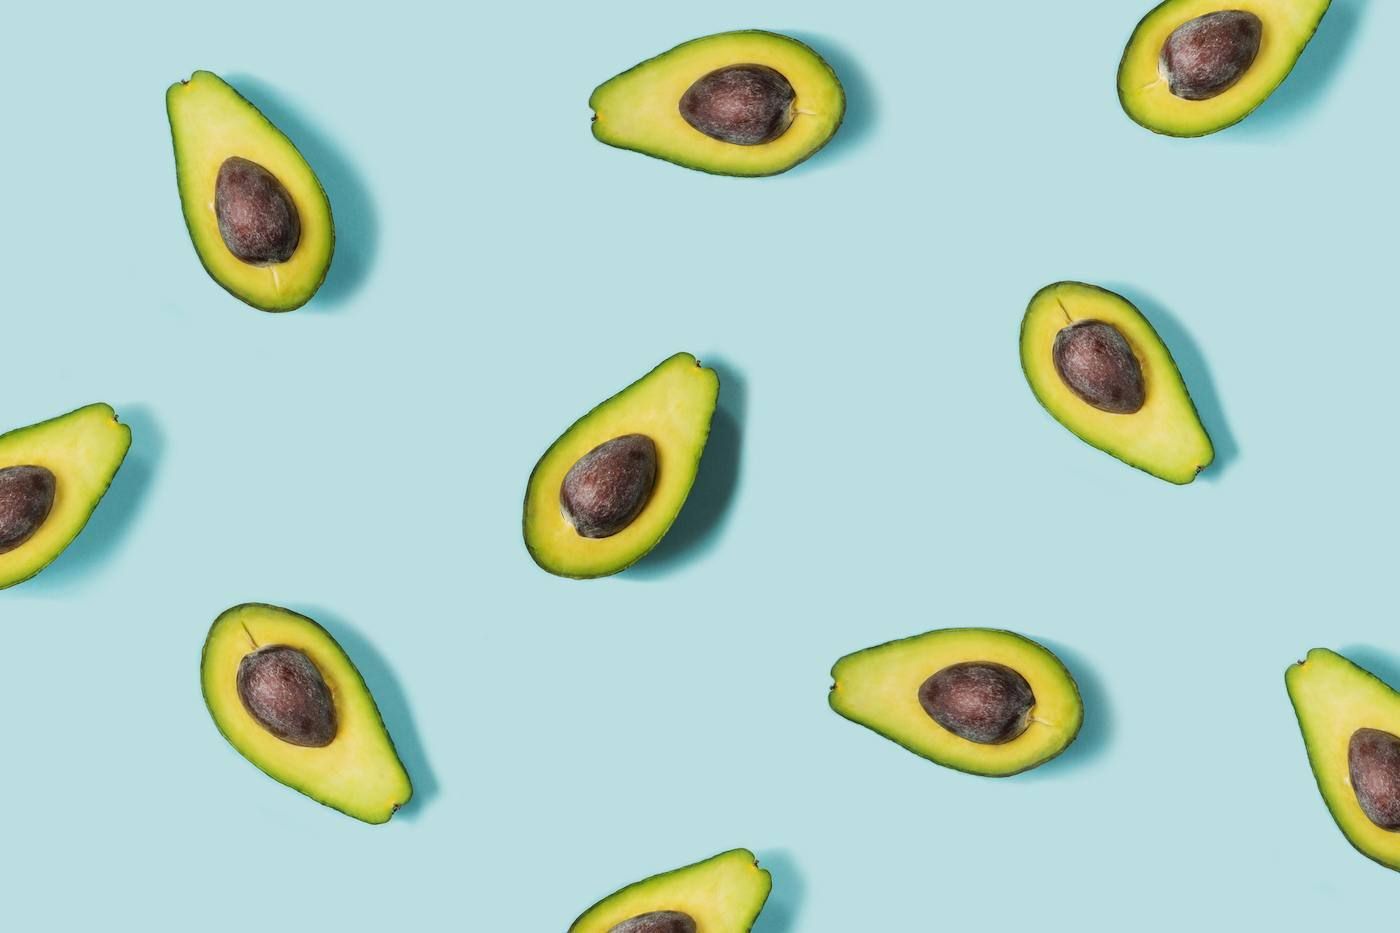 12 foods that are good for your heart (including, yes, avocados)